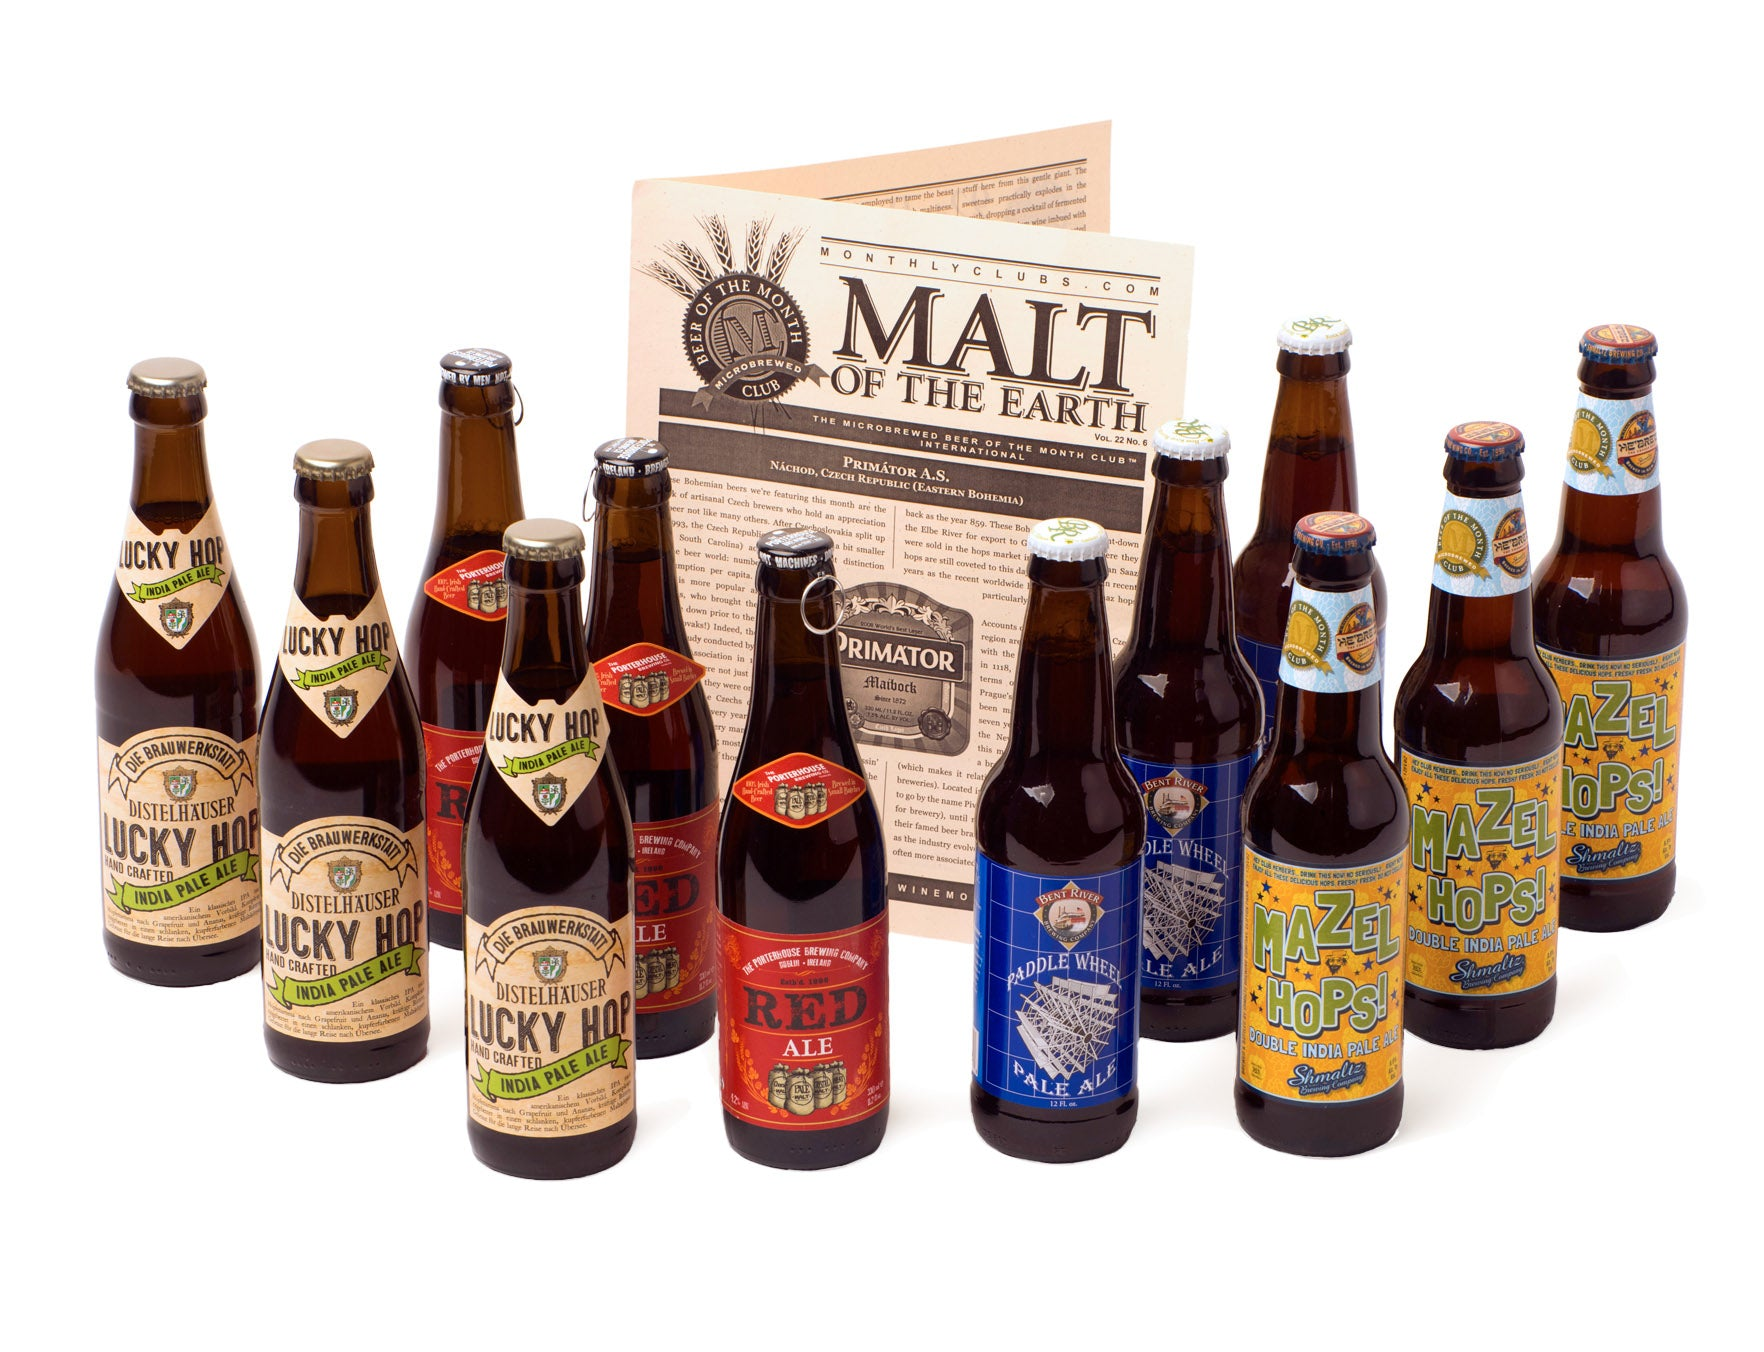 Beer of the Month Club - Find Unique Christmas Gifts